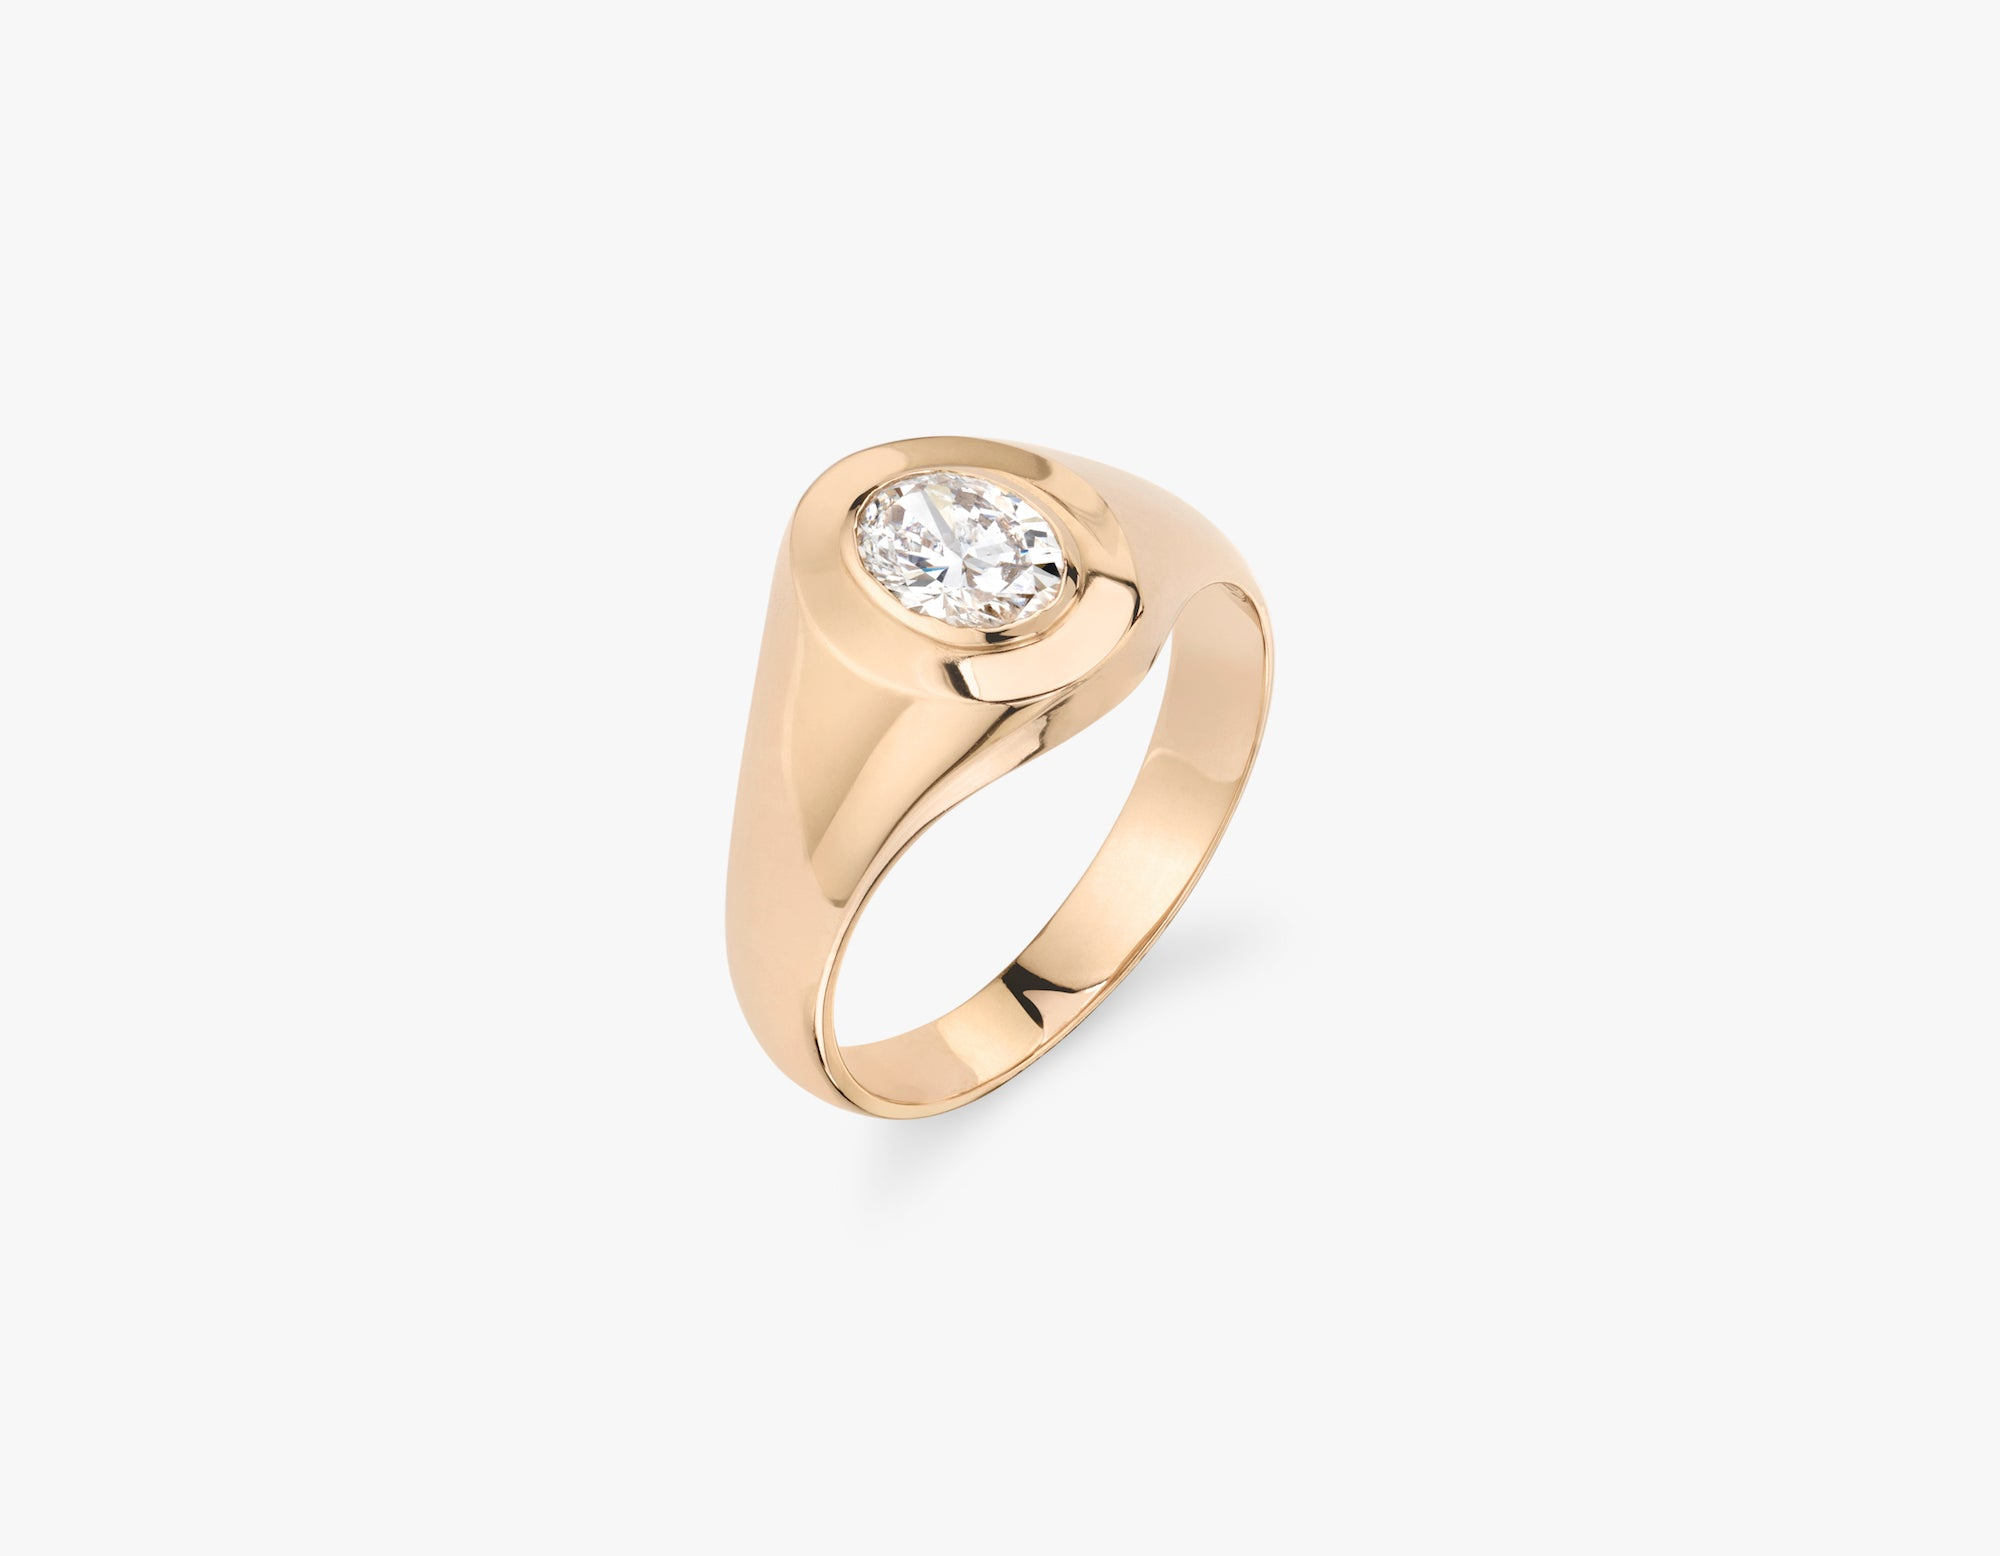 Vrai 14k solid gold classic minimalist Oval Diamond Signet Ring, 14K Rose Gold